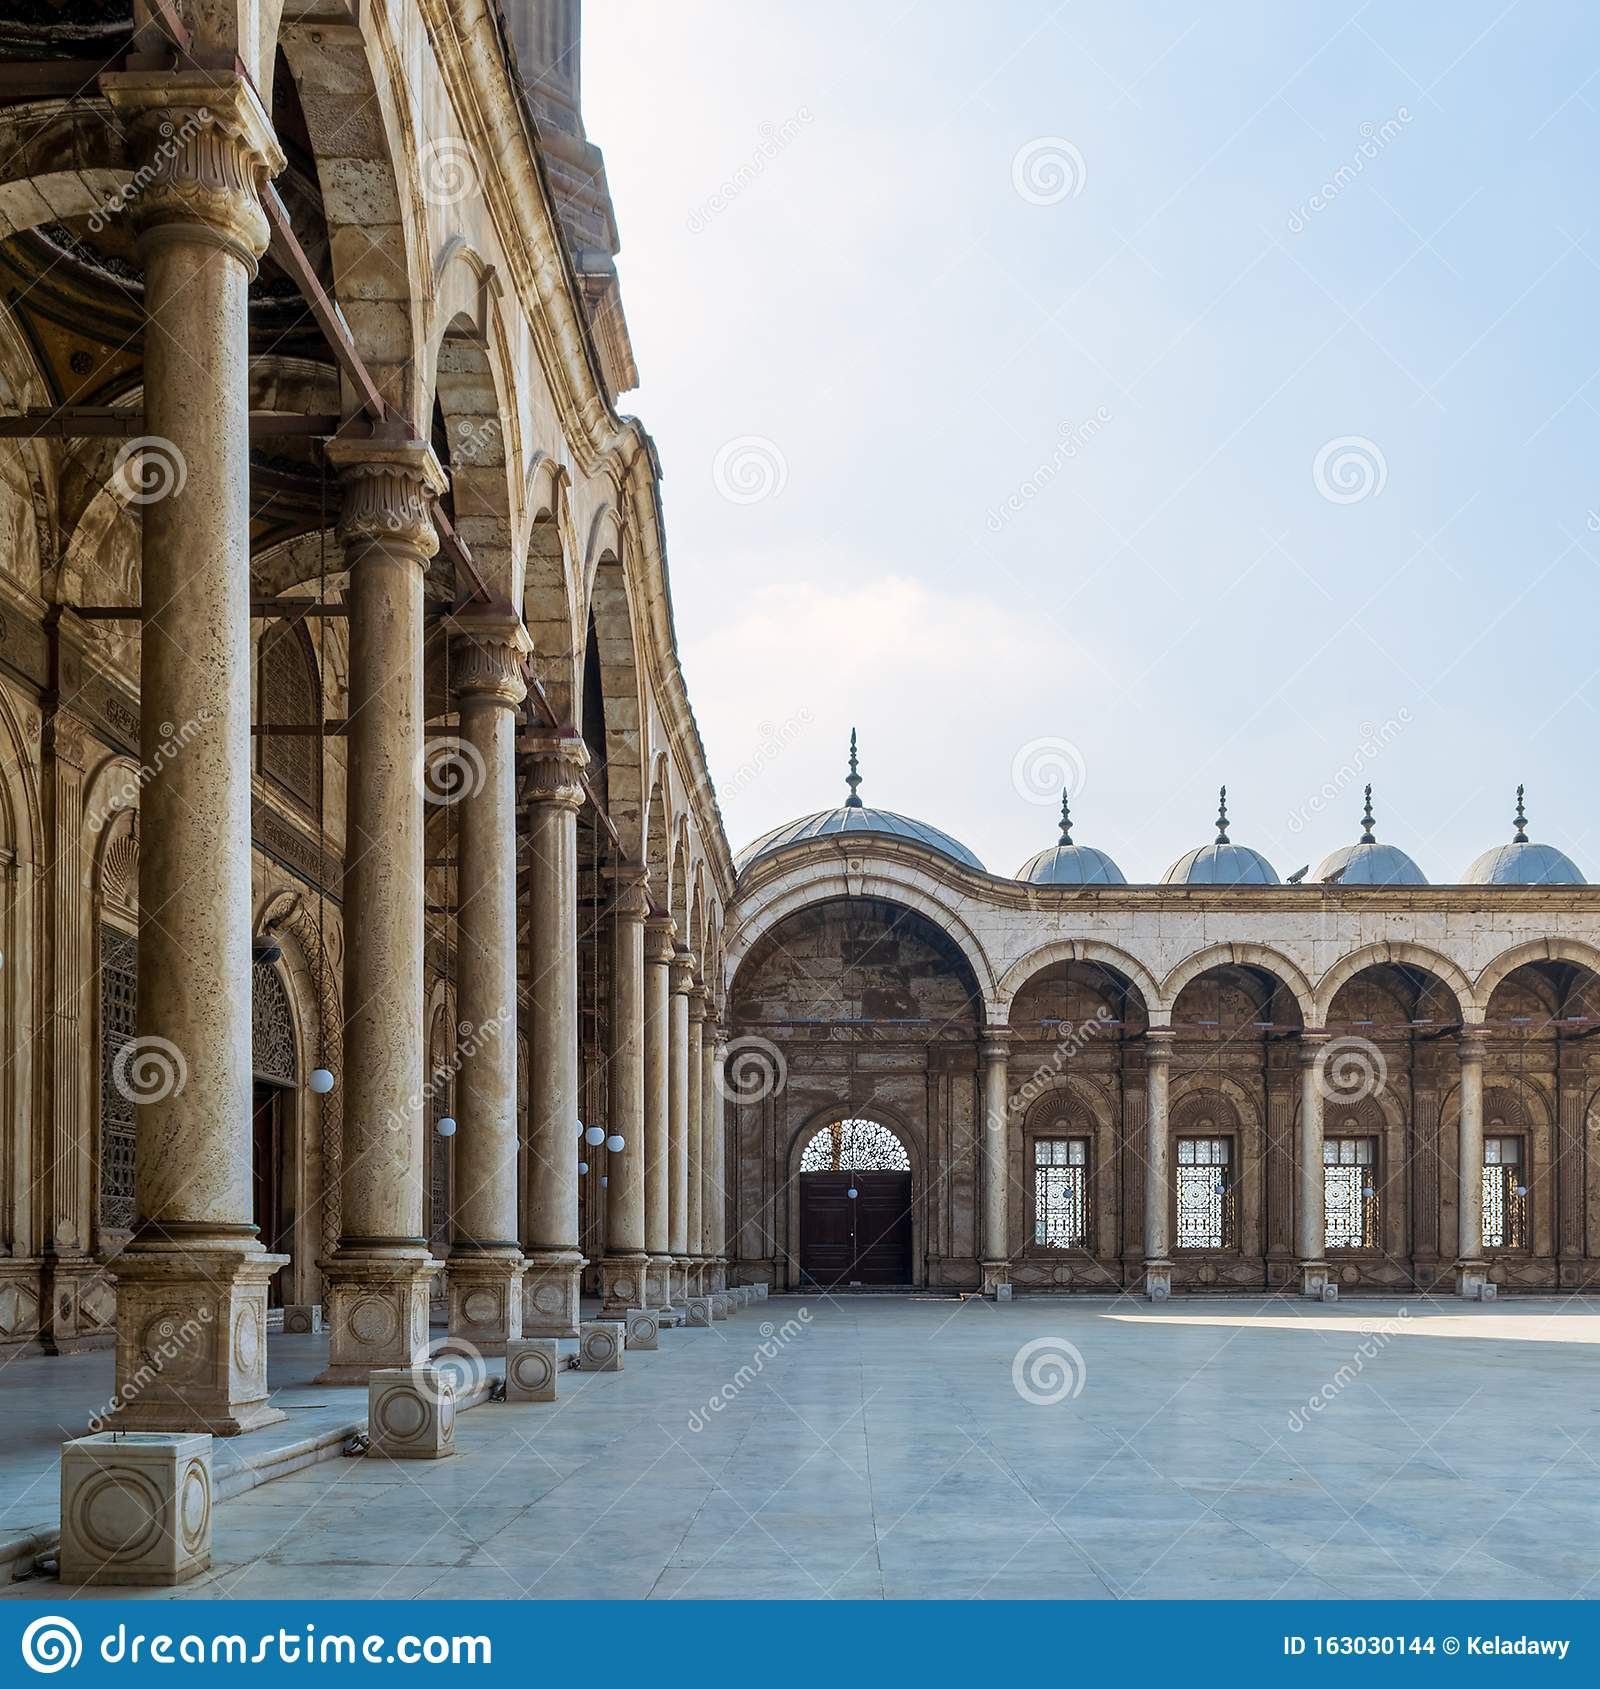 Passage at the courtyard of the Great Mosque of Muhammad Ali, Alabaster Mosque, Cairo Citadel, Egypt